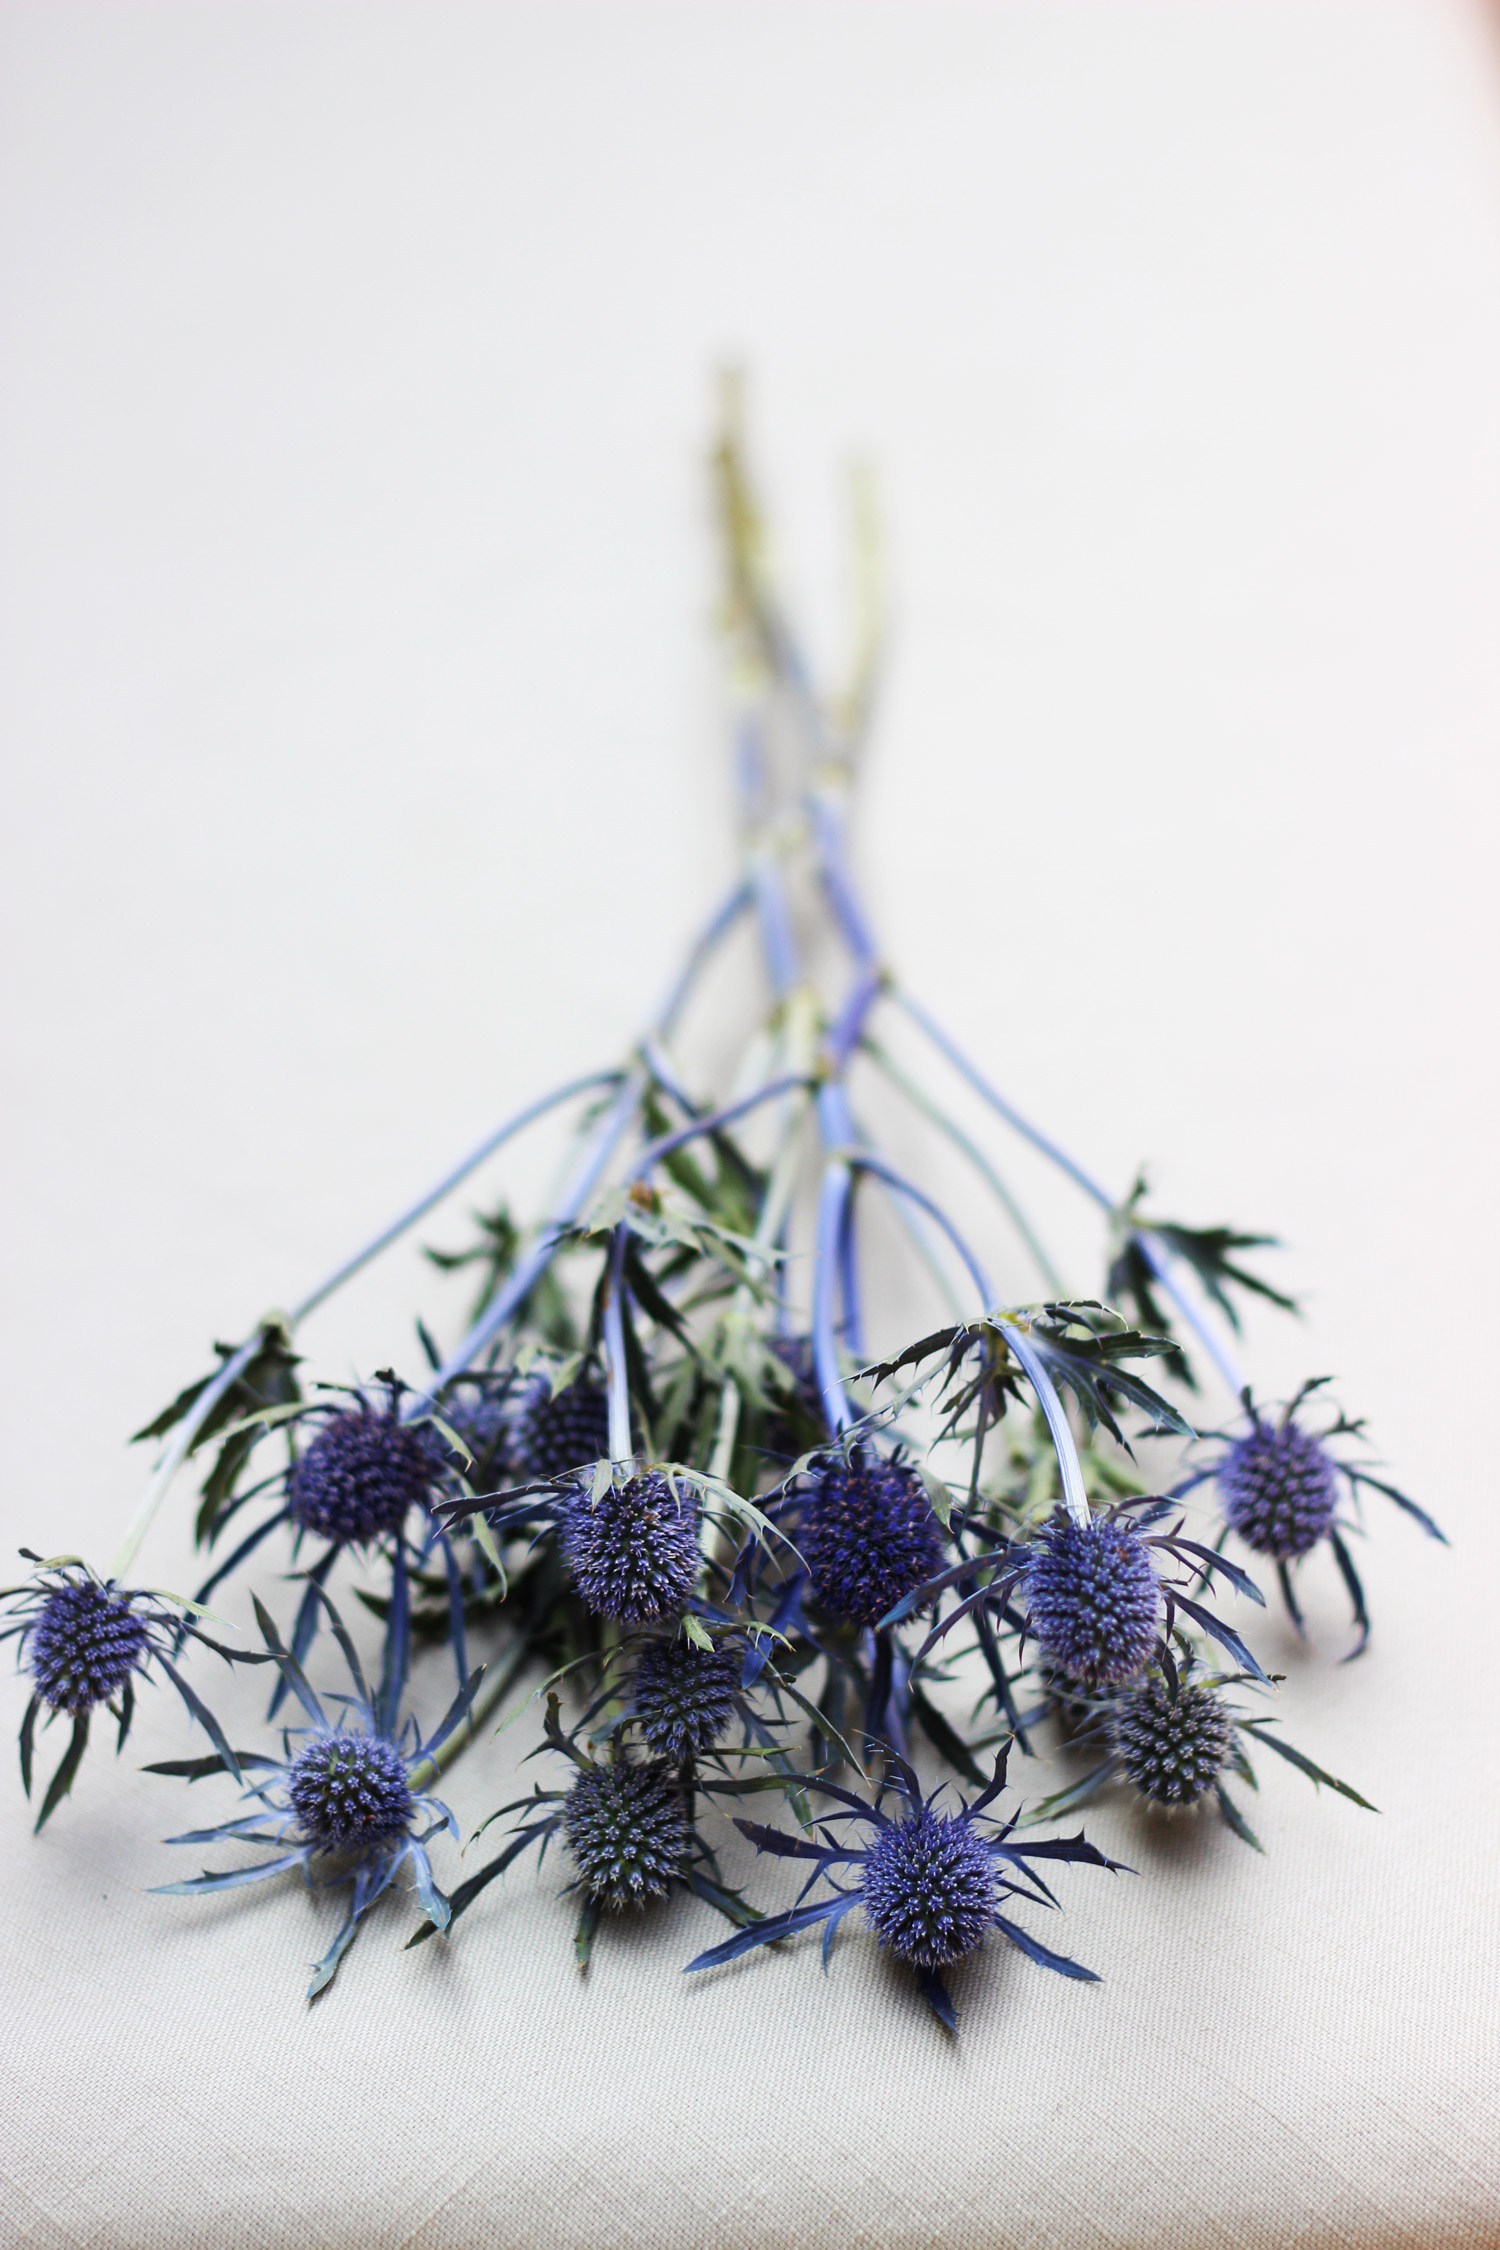 And Amethyst Sea Holly.  Love that purple blue color.